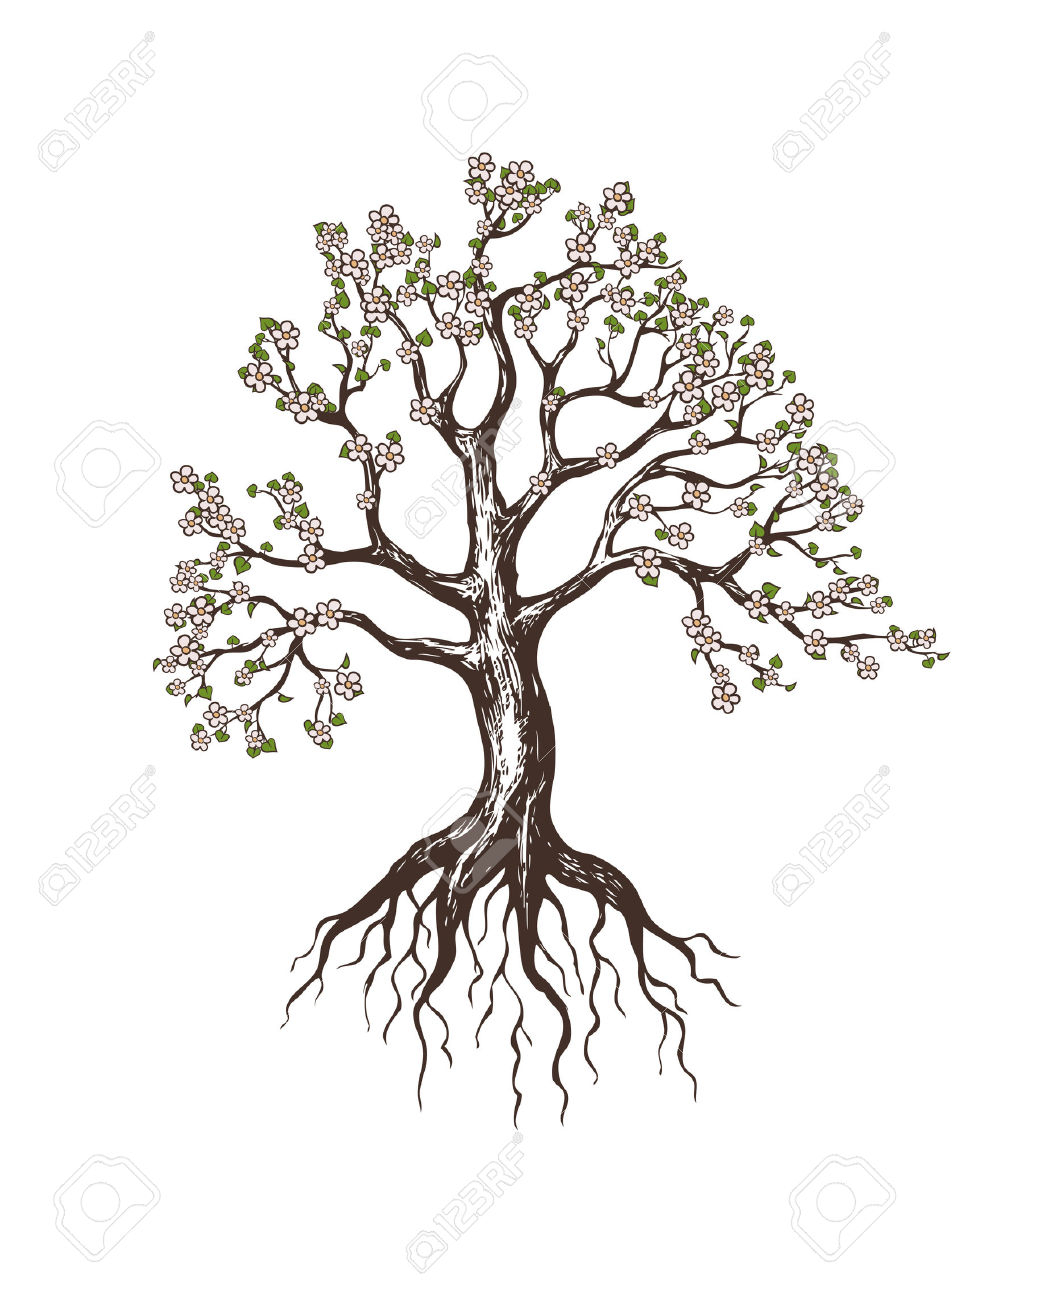 Oak Tree With Roots Tattoo: Tree And Roots Drawing At GetDrawings